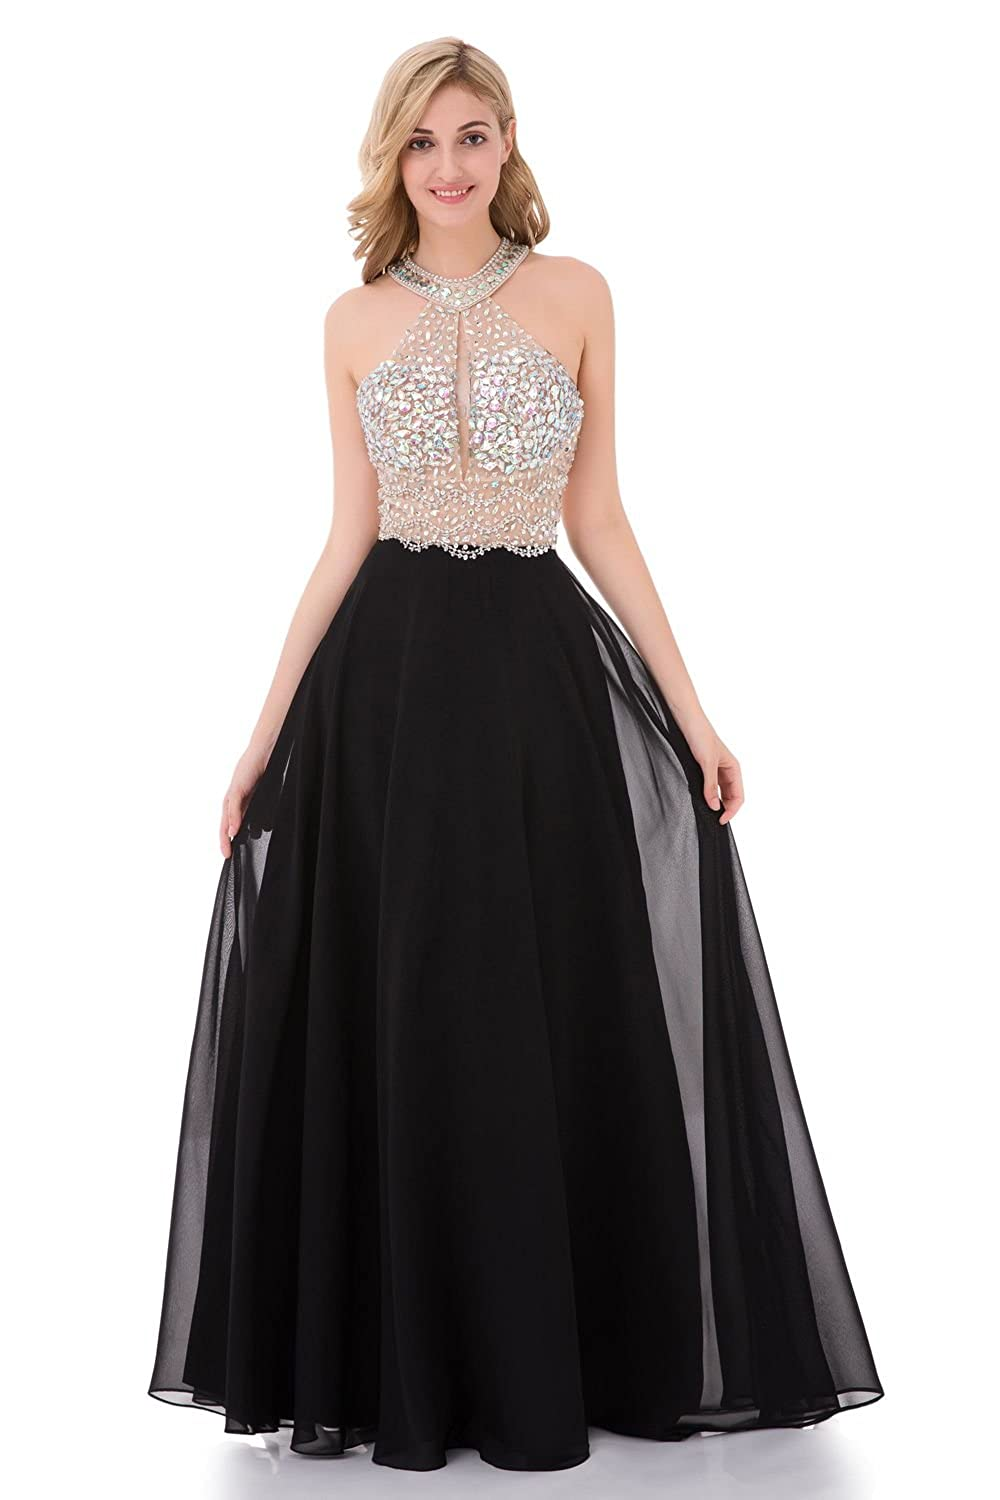 5a4b1b4f89b6 Amazon.com: YuNuo Sparkly Crystal Beading Prom Dresses Long 2019 Sexy Open  Back Party Ball Gown Scoop Bridesmaid Dresses…: Clothing